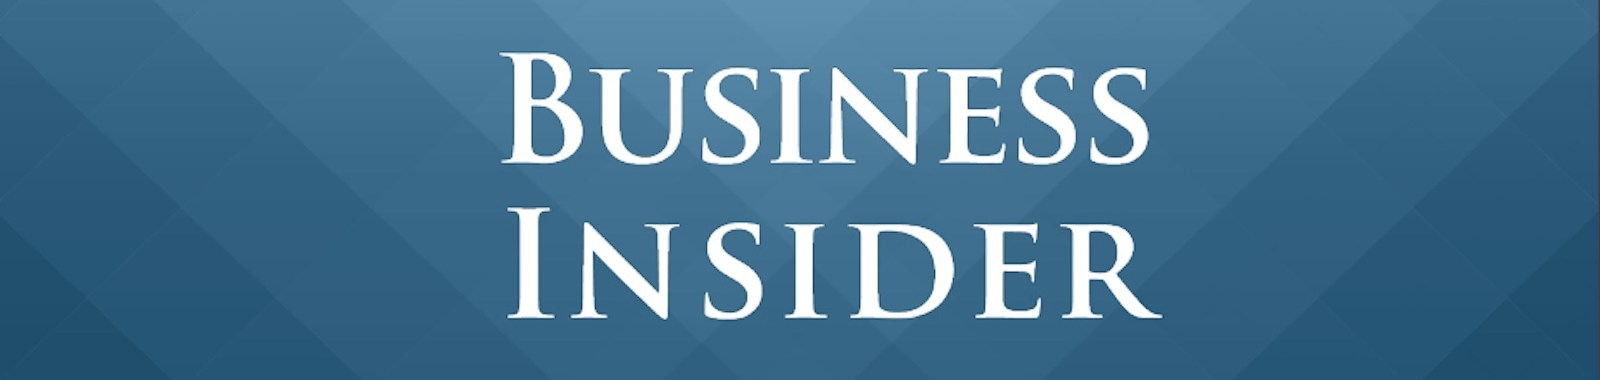 business_insider_eye